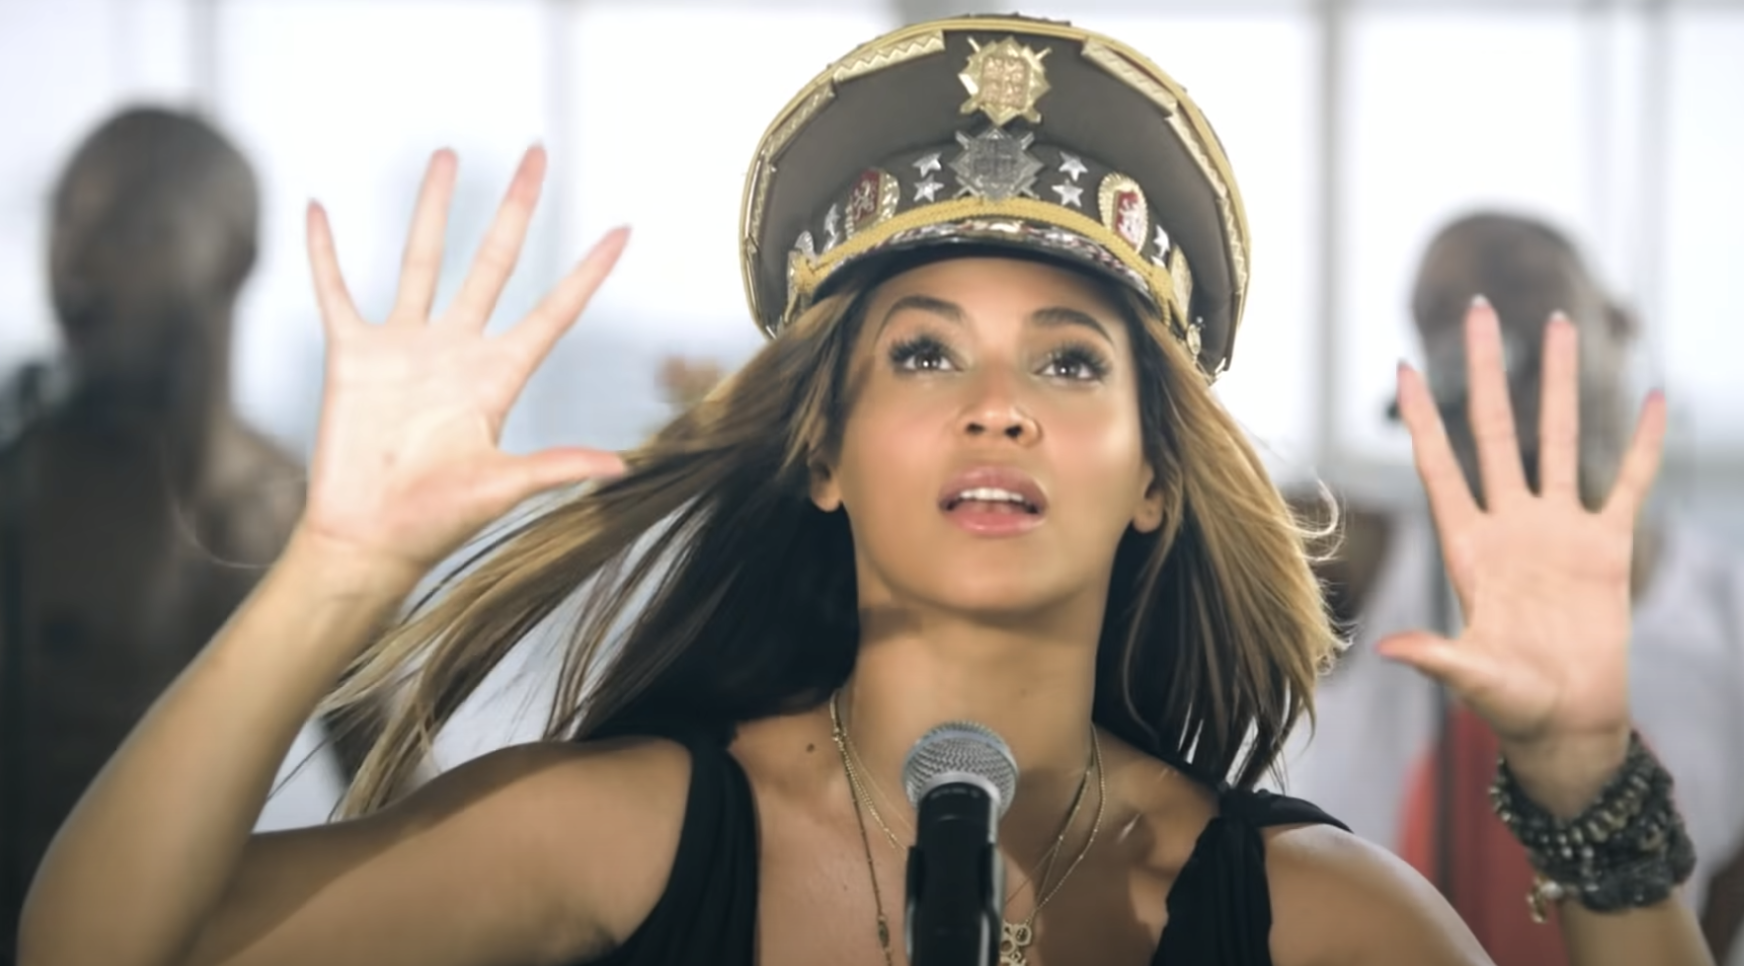 Queen Bey looks up dreamily in the Love on Top video